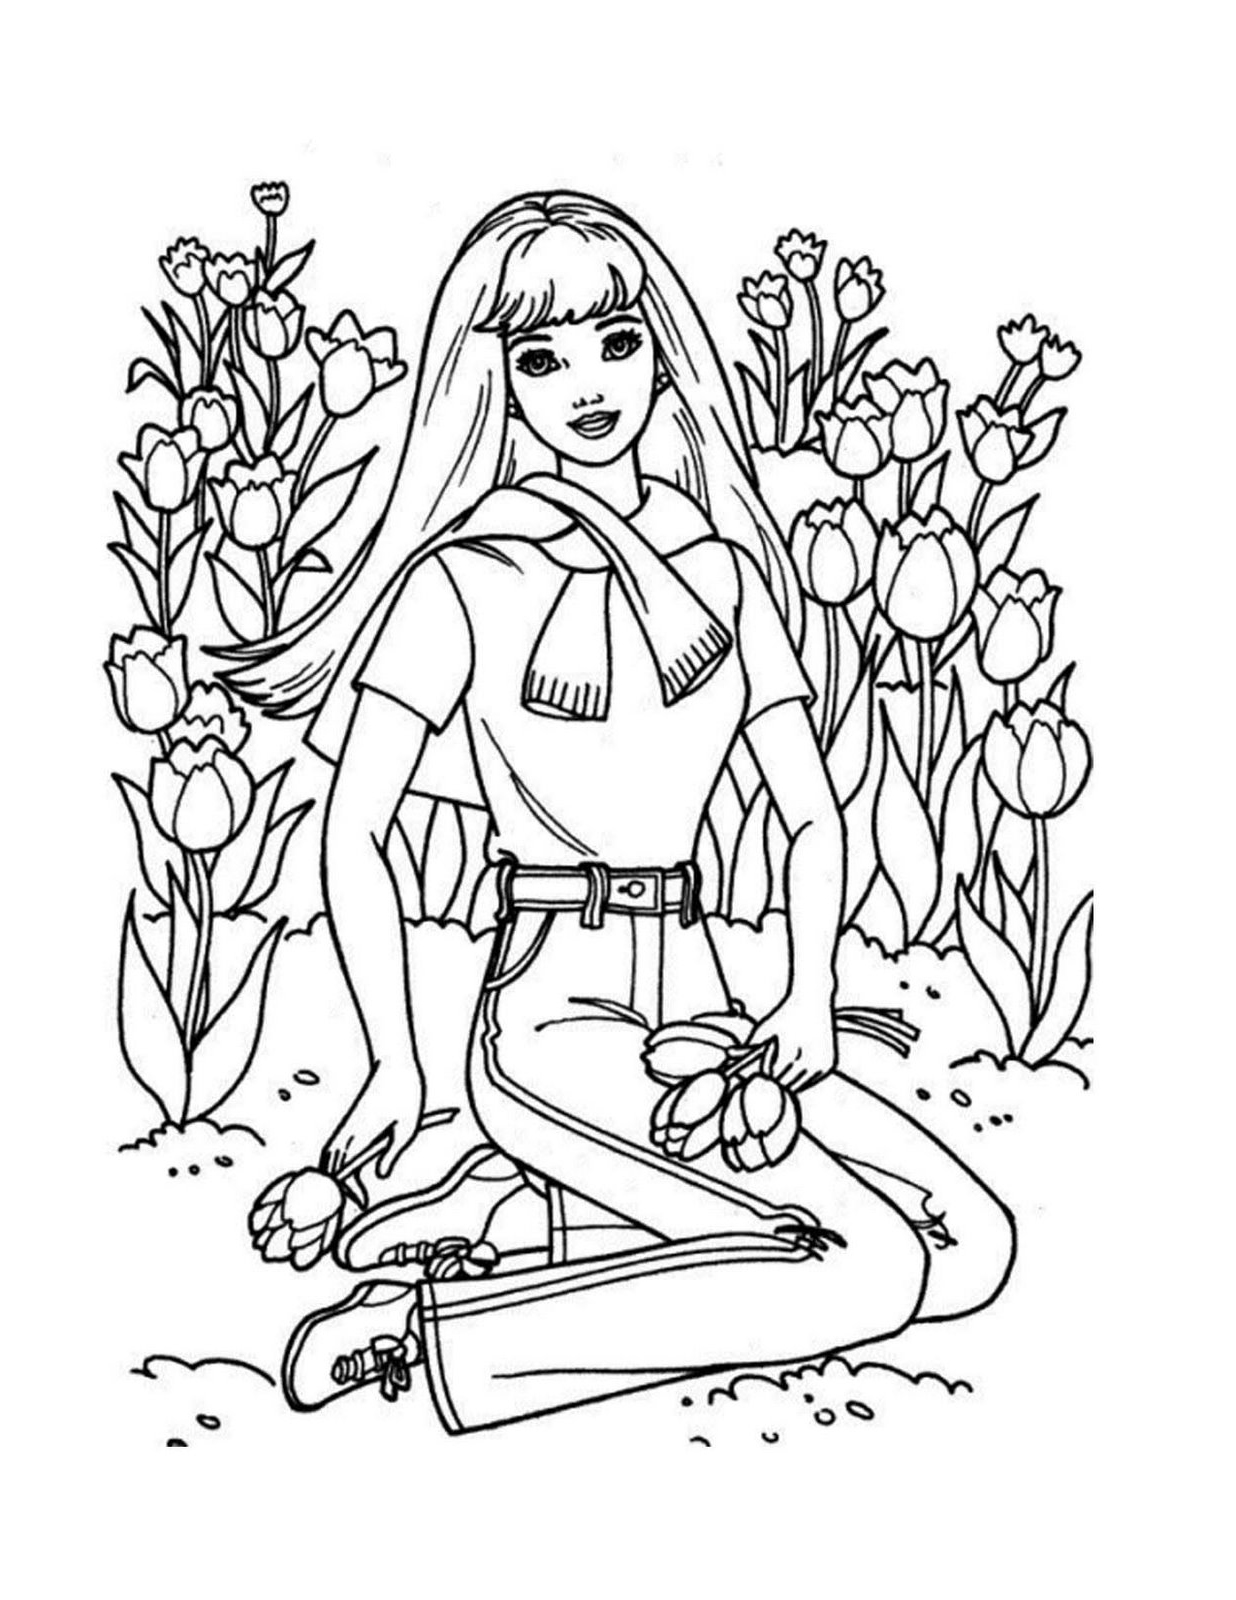 barbie coloring pages on coloring book info | Free Coloring Pages: Barbie Coloring Pages